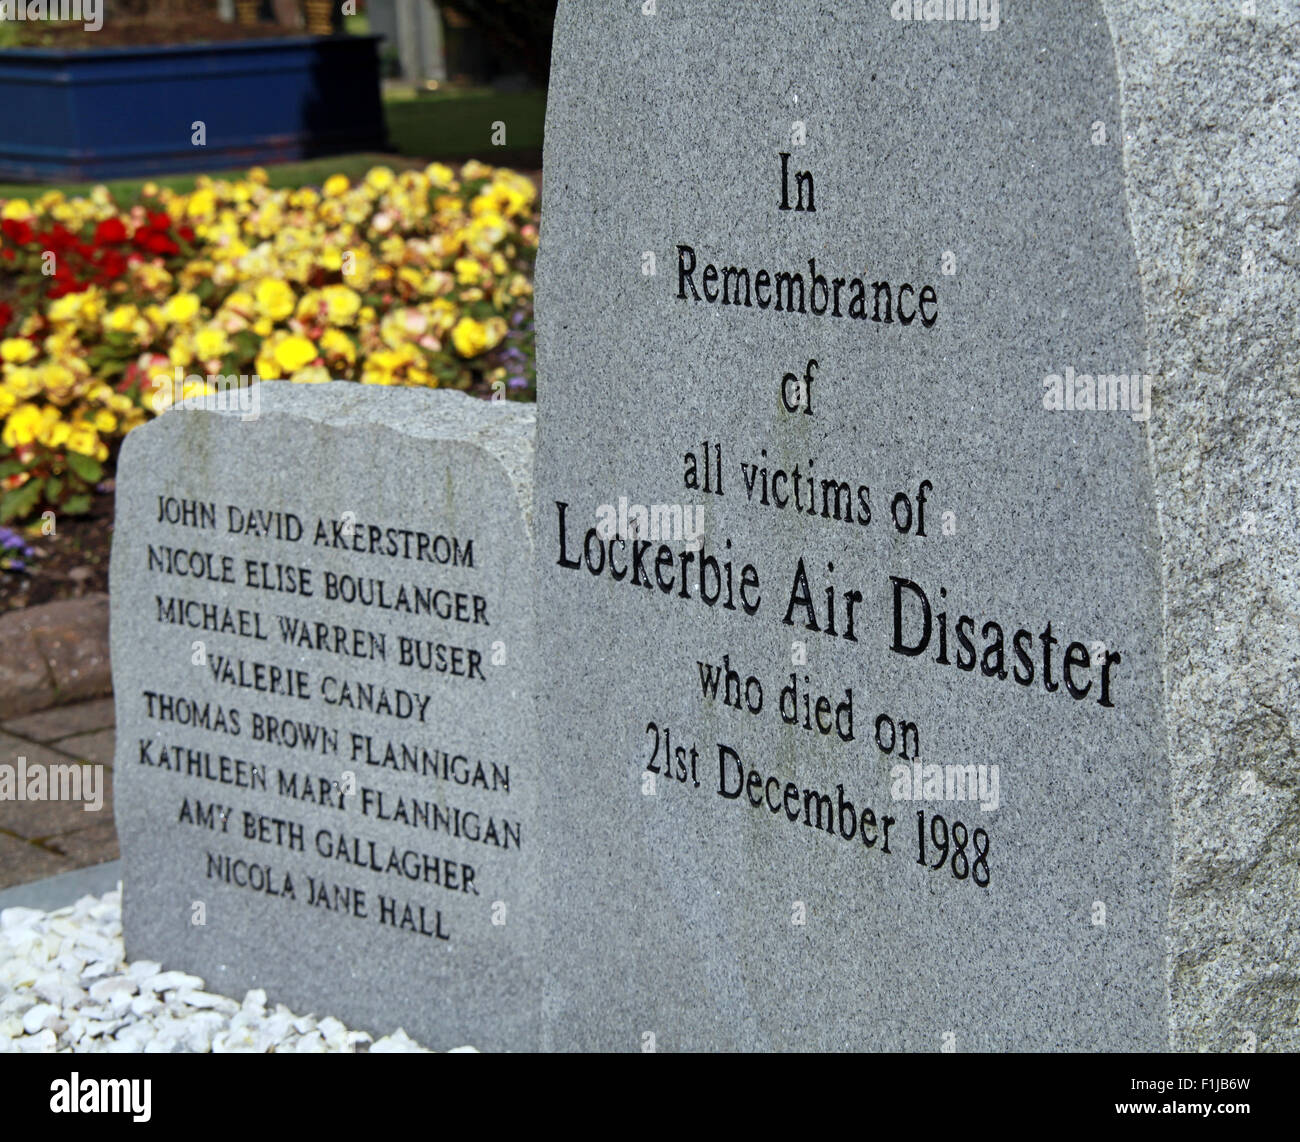 Lockerbie PanAm103 In Rememberance Memorial Stones Close-up, Scotland - Stock Image